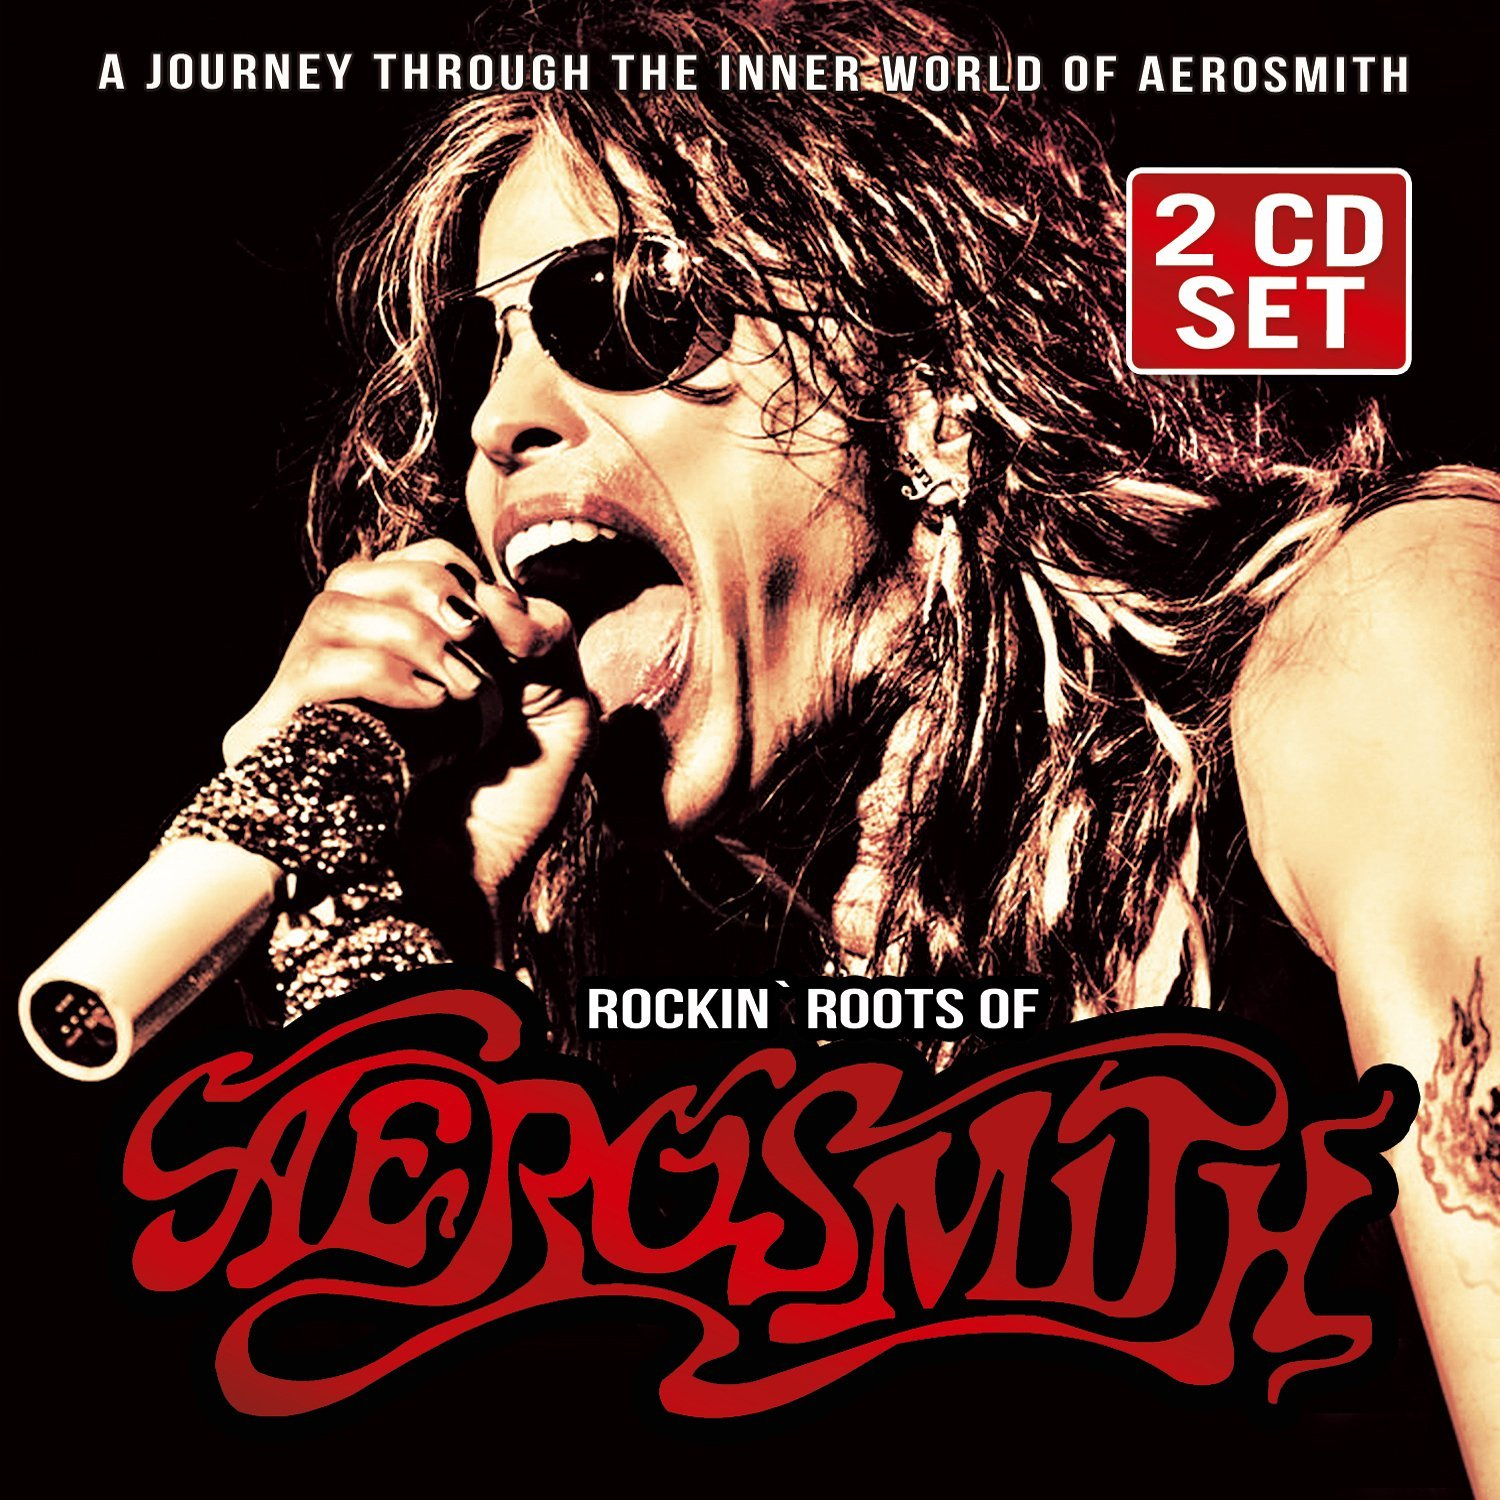 Rockin' Roots Of Aerosmith